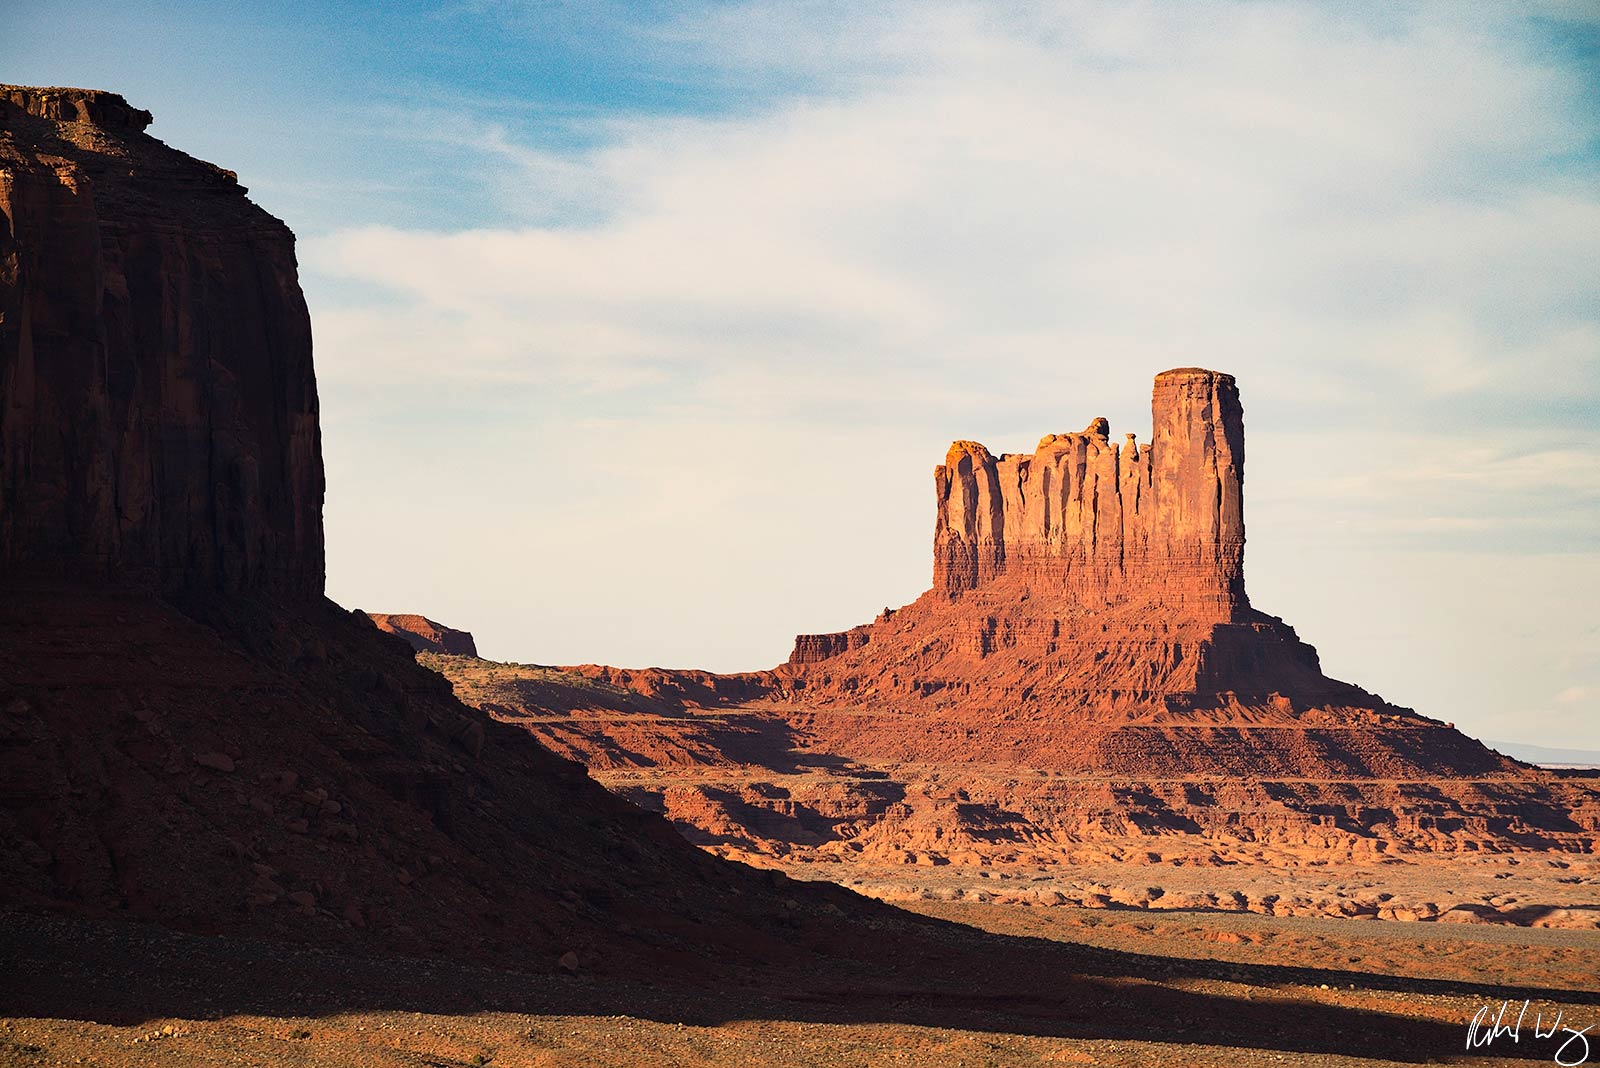 Monument Valley Tribal Park, Arizona